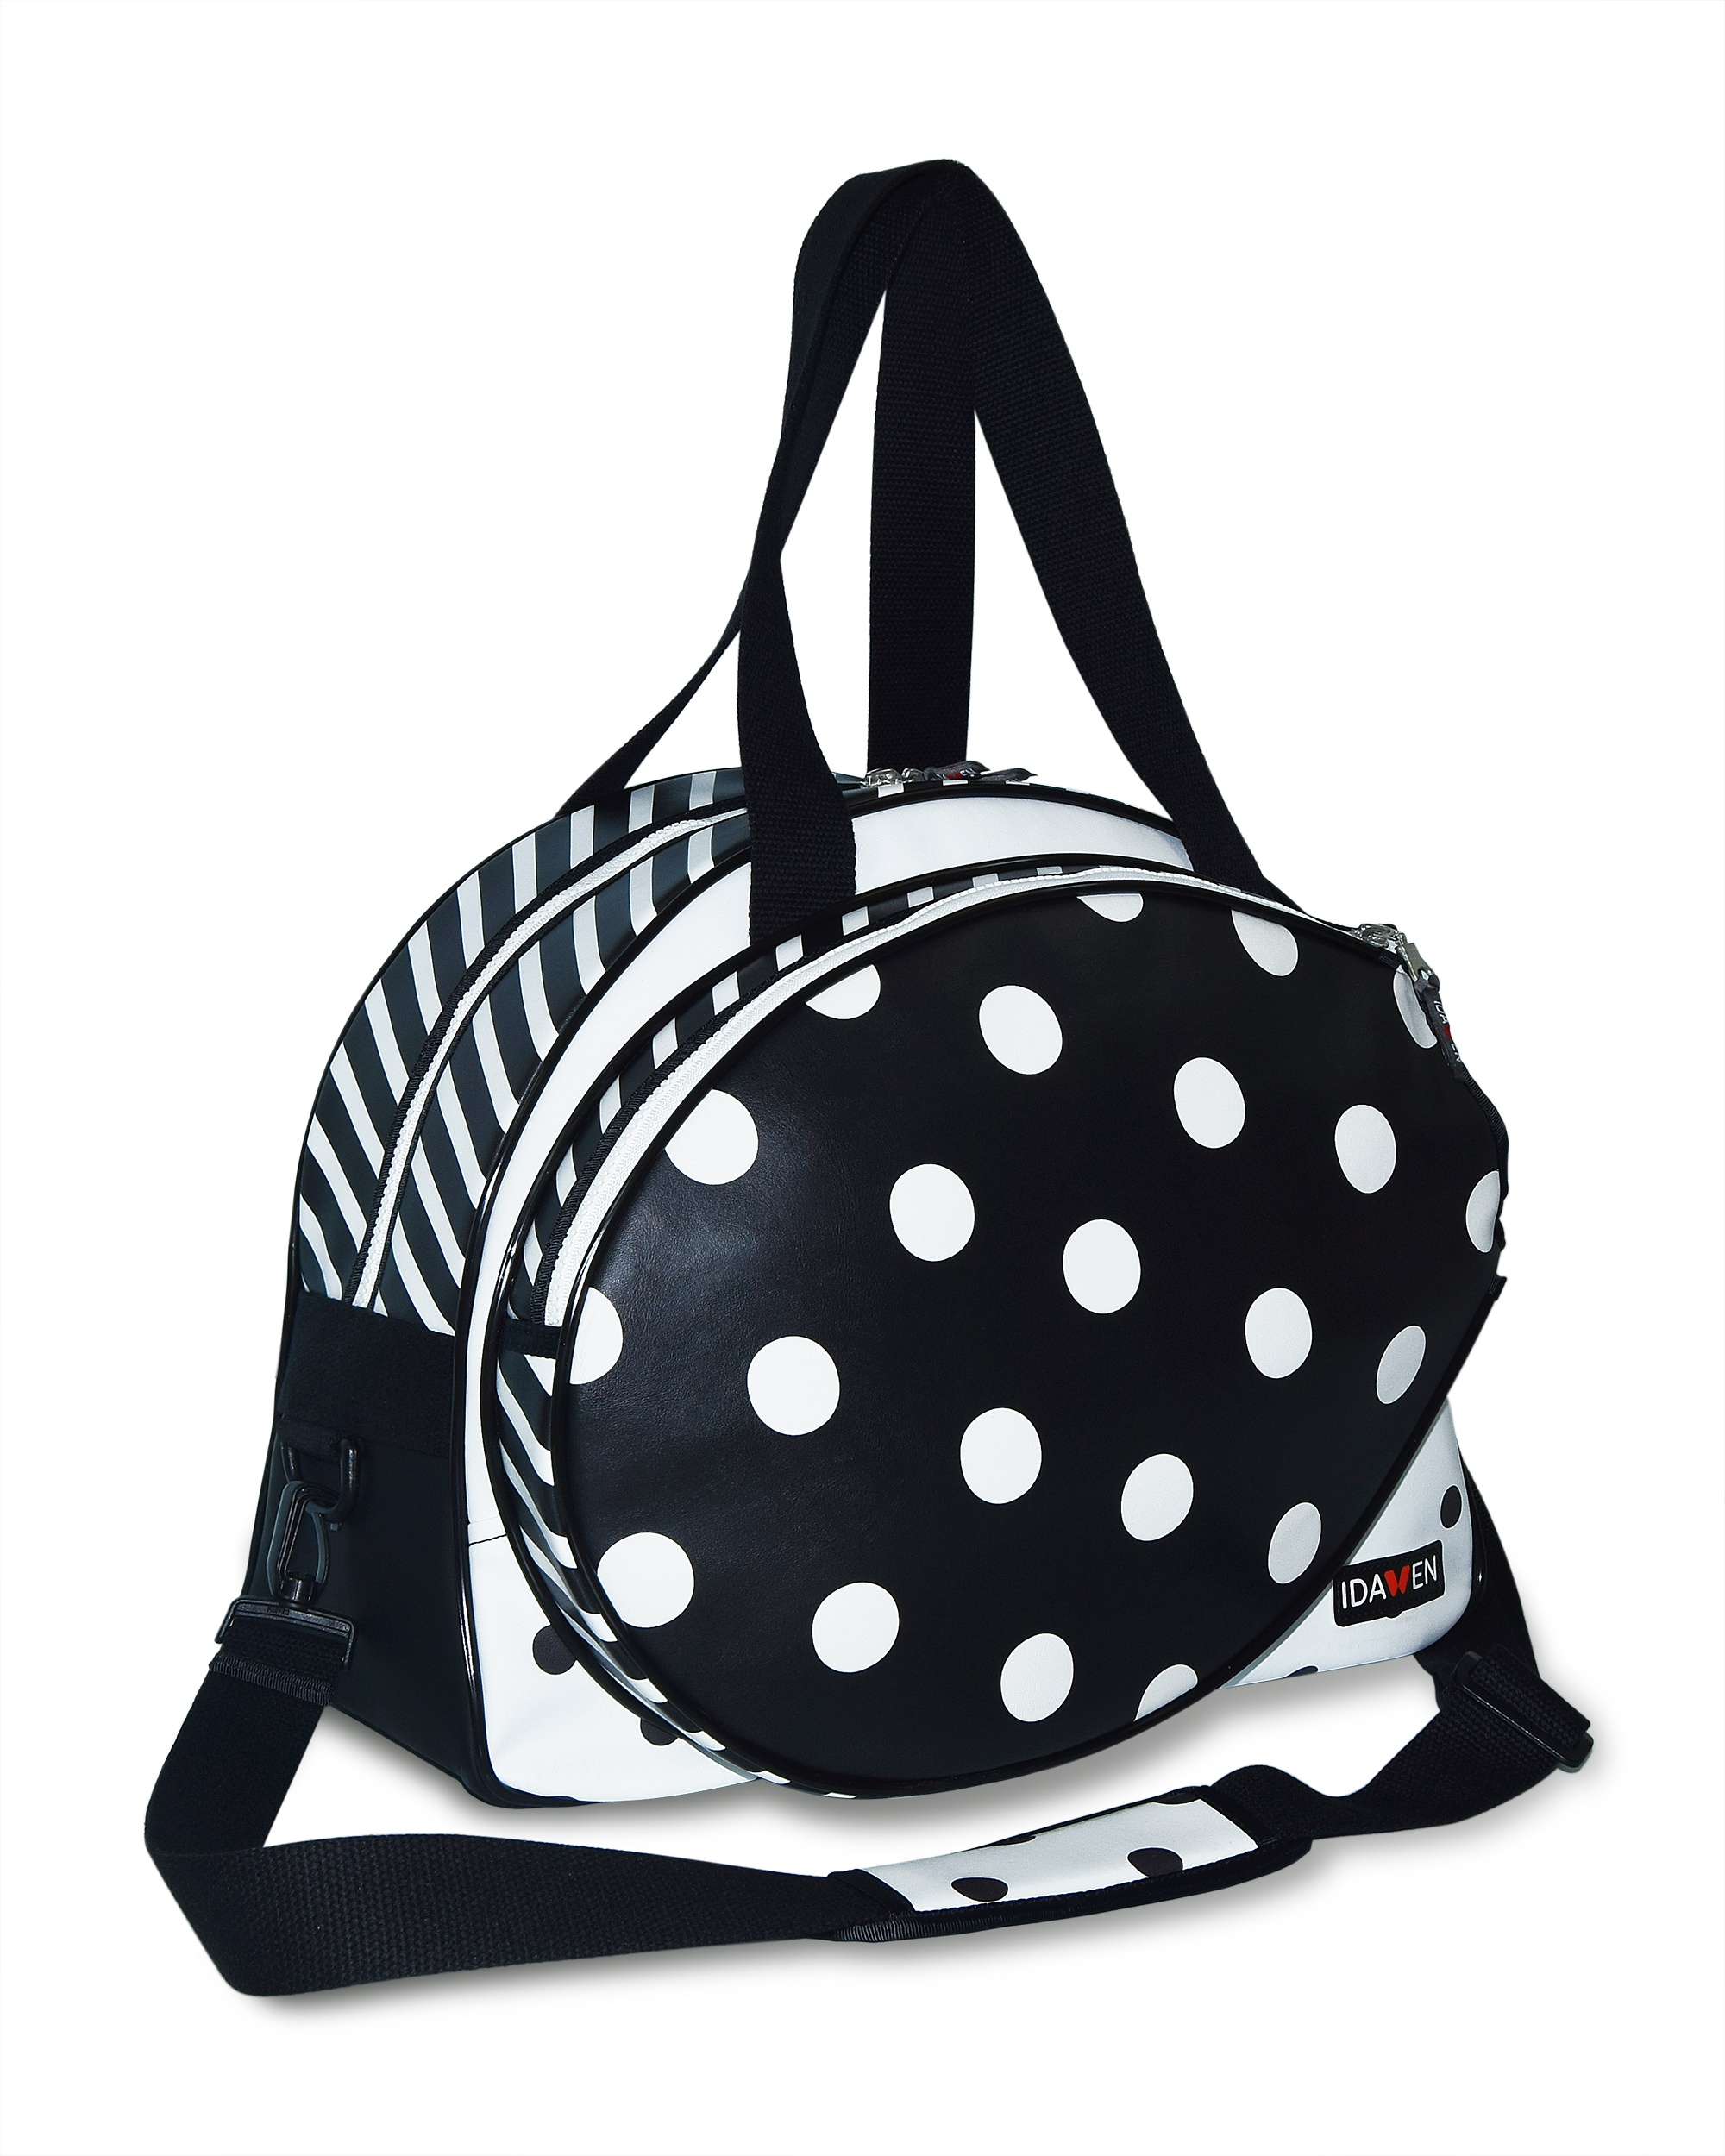 Women Tennis Bag Polka Dots Bags Ce Idawen Woman And